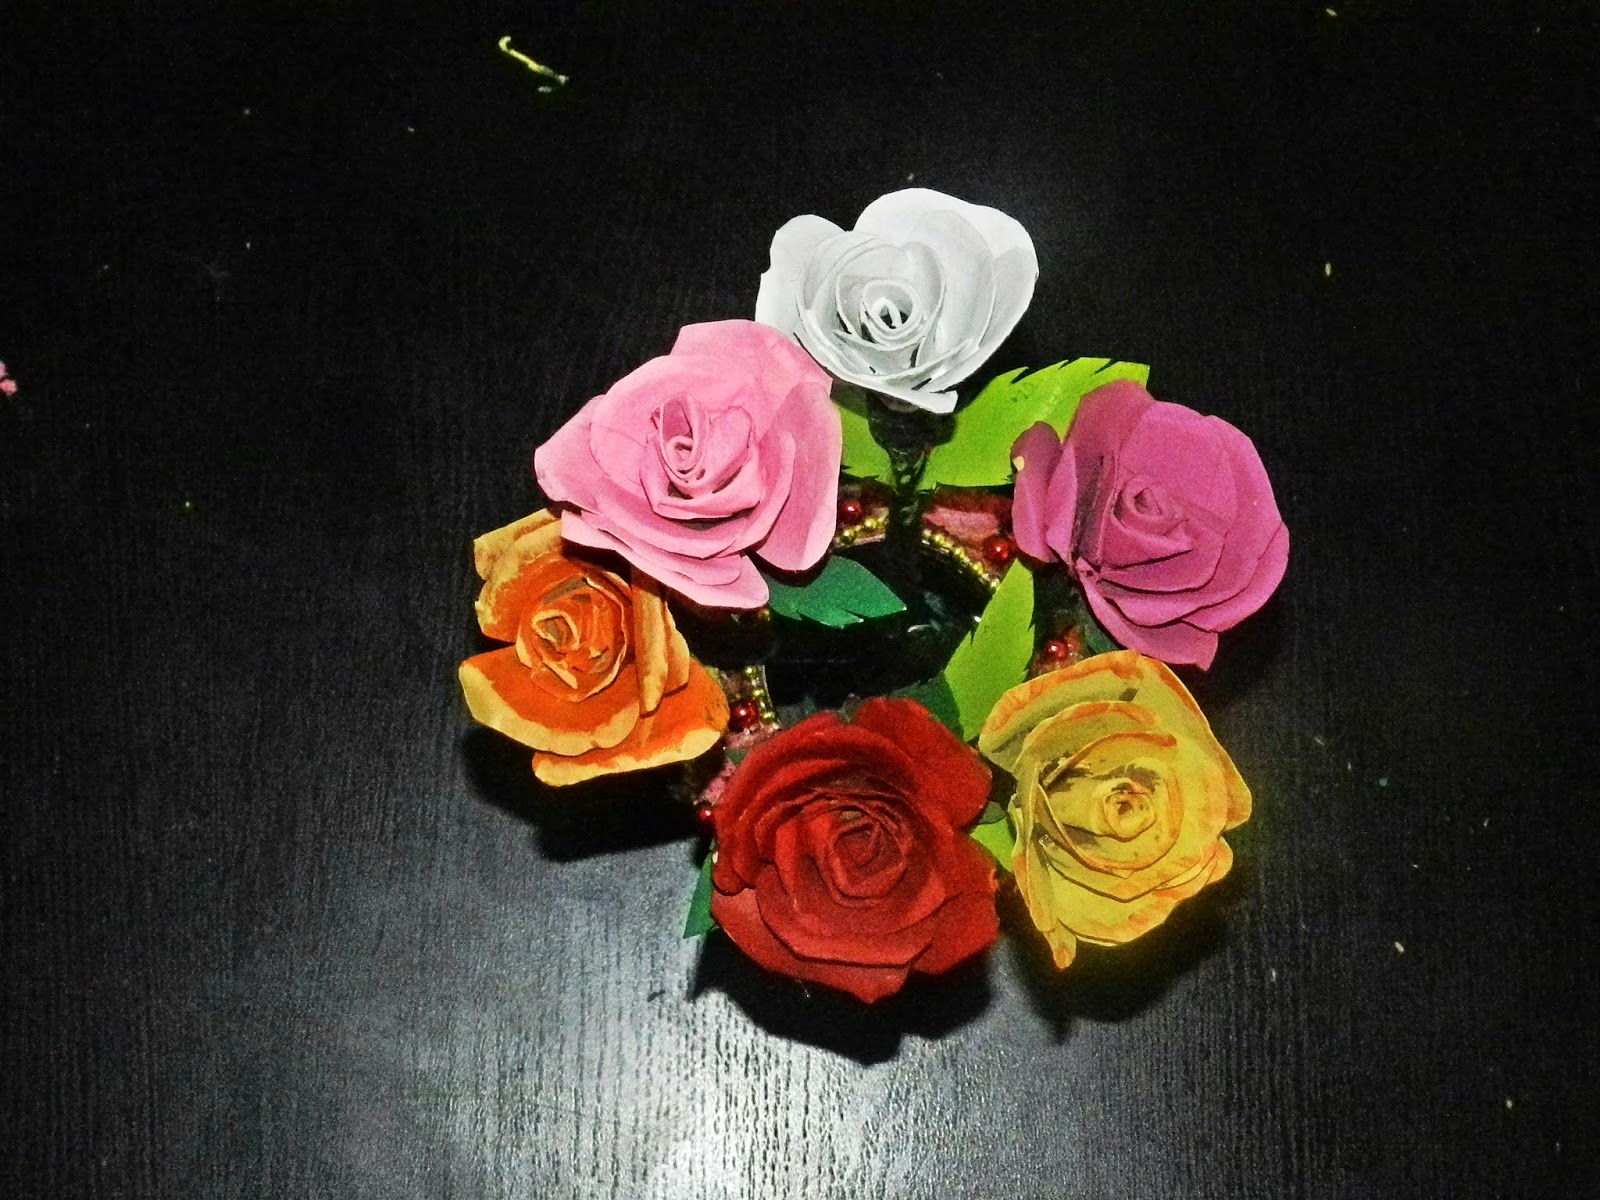 Creative diy crafts tissue holder crafts recycled diy rose flowers made with tissue paper rolls toilet tissue rolls mightylinksfo Choice Image